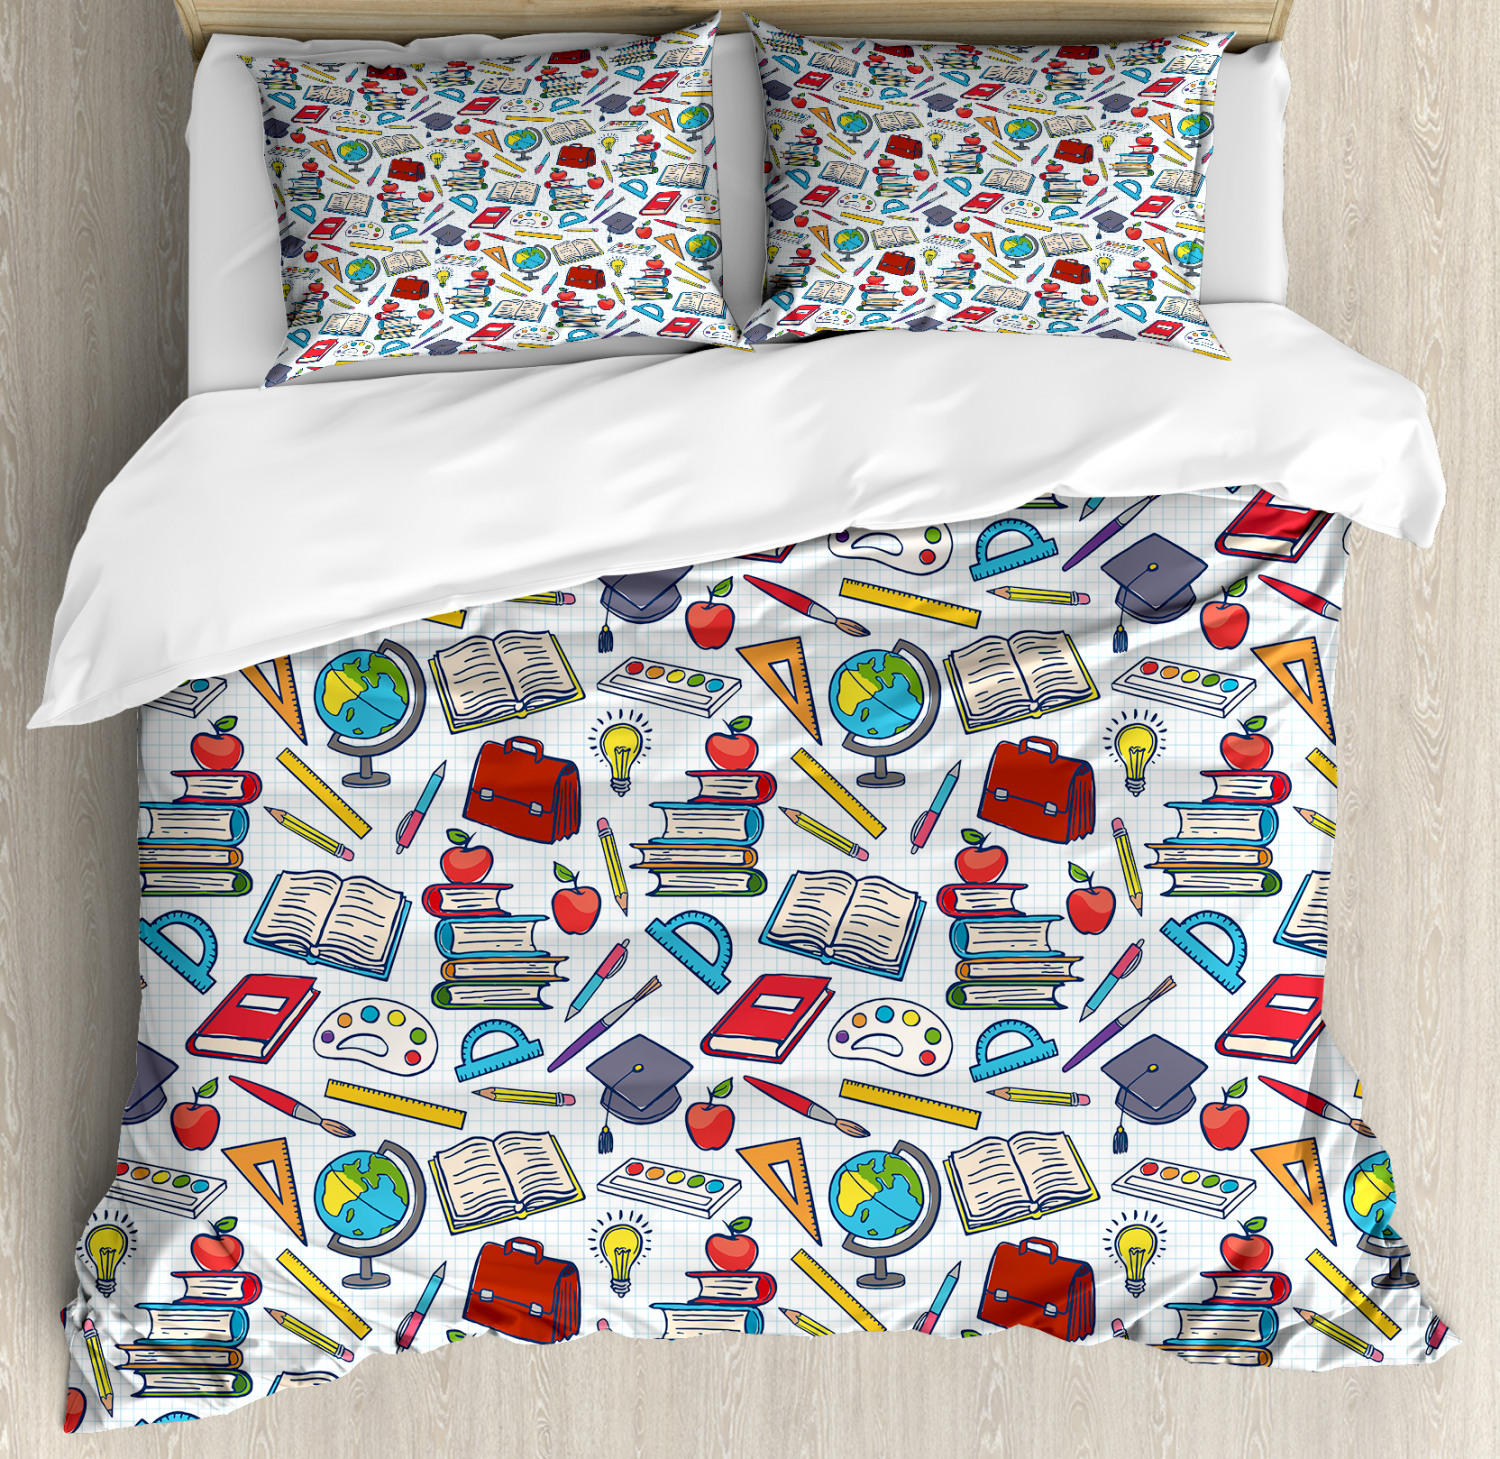 Kids Duvet Cover Set Elementary School Theme Student Supplies Globe Paints And Brushes Books Education Decorative Bedding Set With Pillow Shams Multicolor By Ambesonne Walmart Com Walmart Com